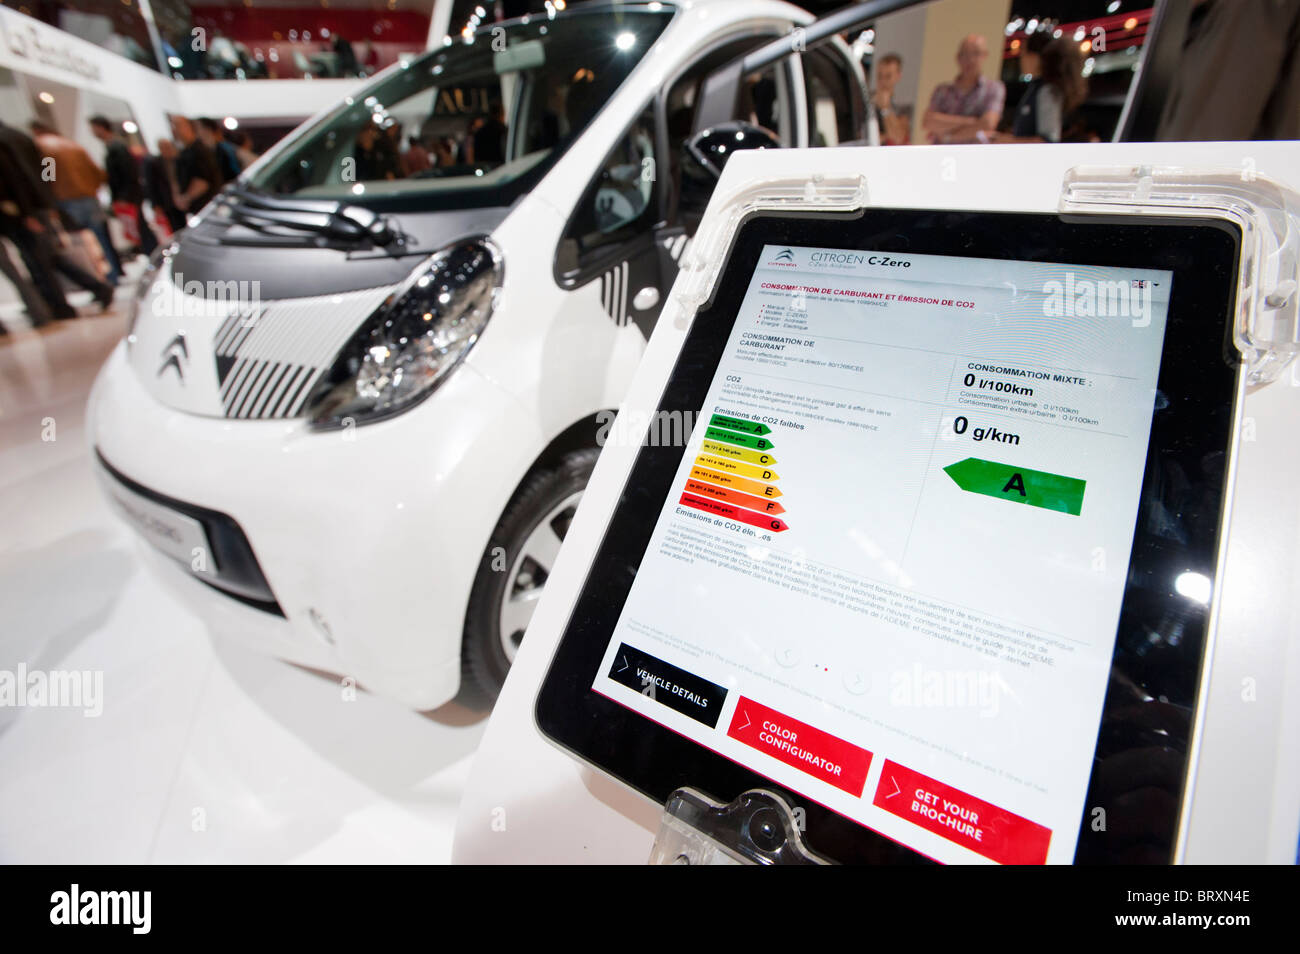 Technical information display showing zero C02 emissions from Citroen ION electric car at Paris Motor Show 2010 - Stock Image